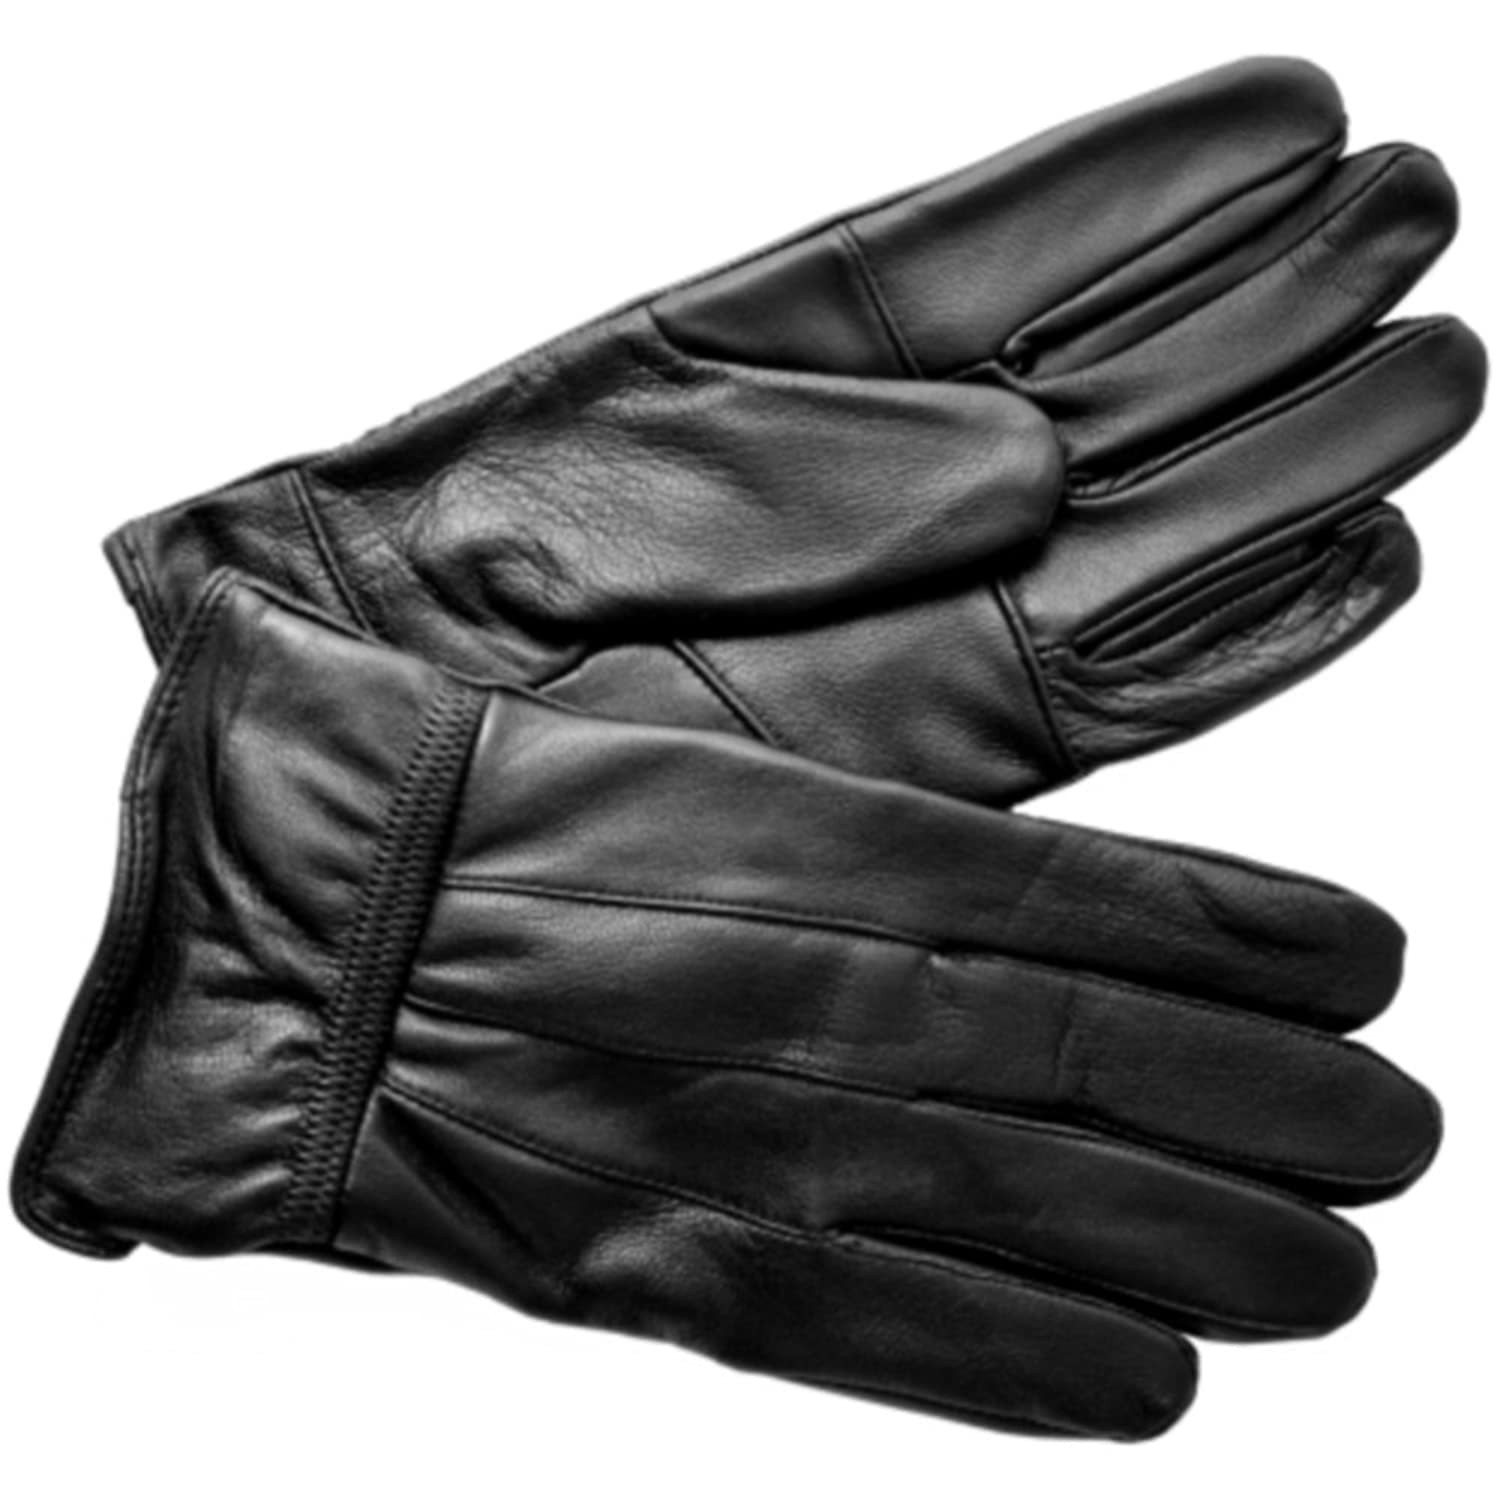 Mens leather driving gloves australia - Driving Gloves Australia Leather Emporium Mens New Black Soft Leather Driving Gloves 8922 Medium Amazon